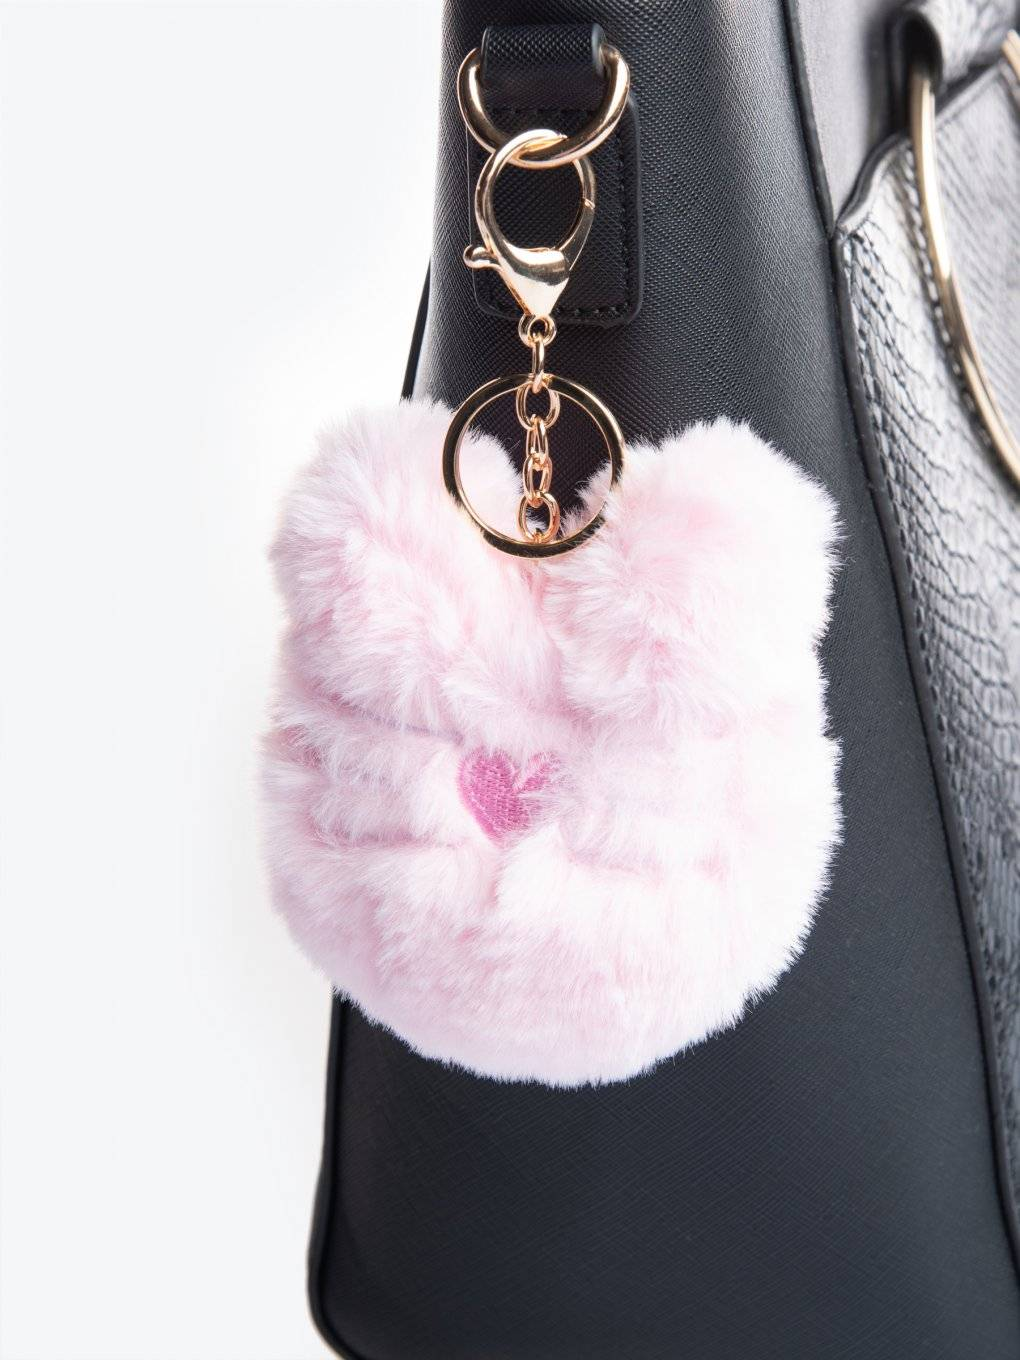 Kitty key ring